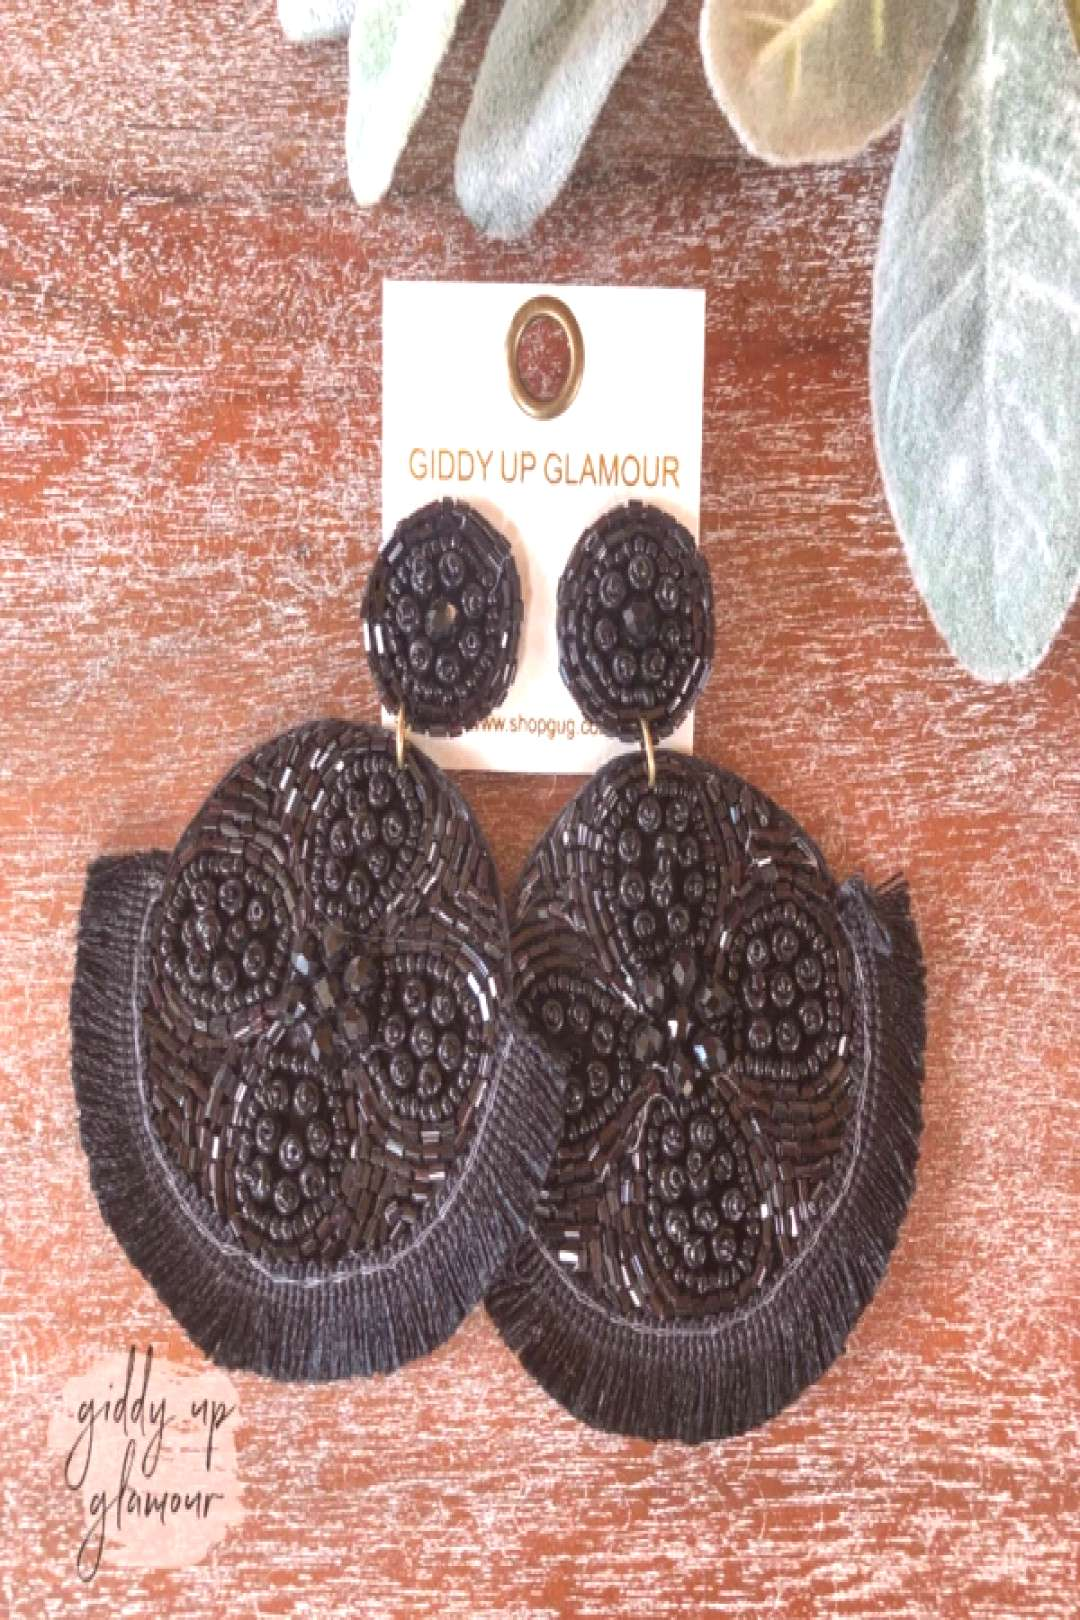 These earrings were exclusively designed for Giddy Up Glamour! Earrings measure 3.5 inches long. SK